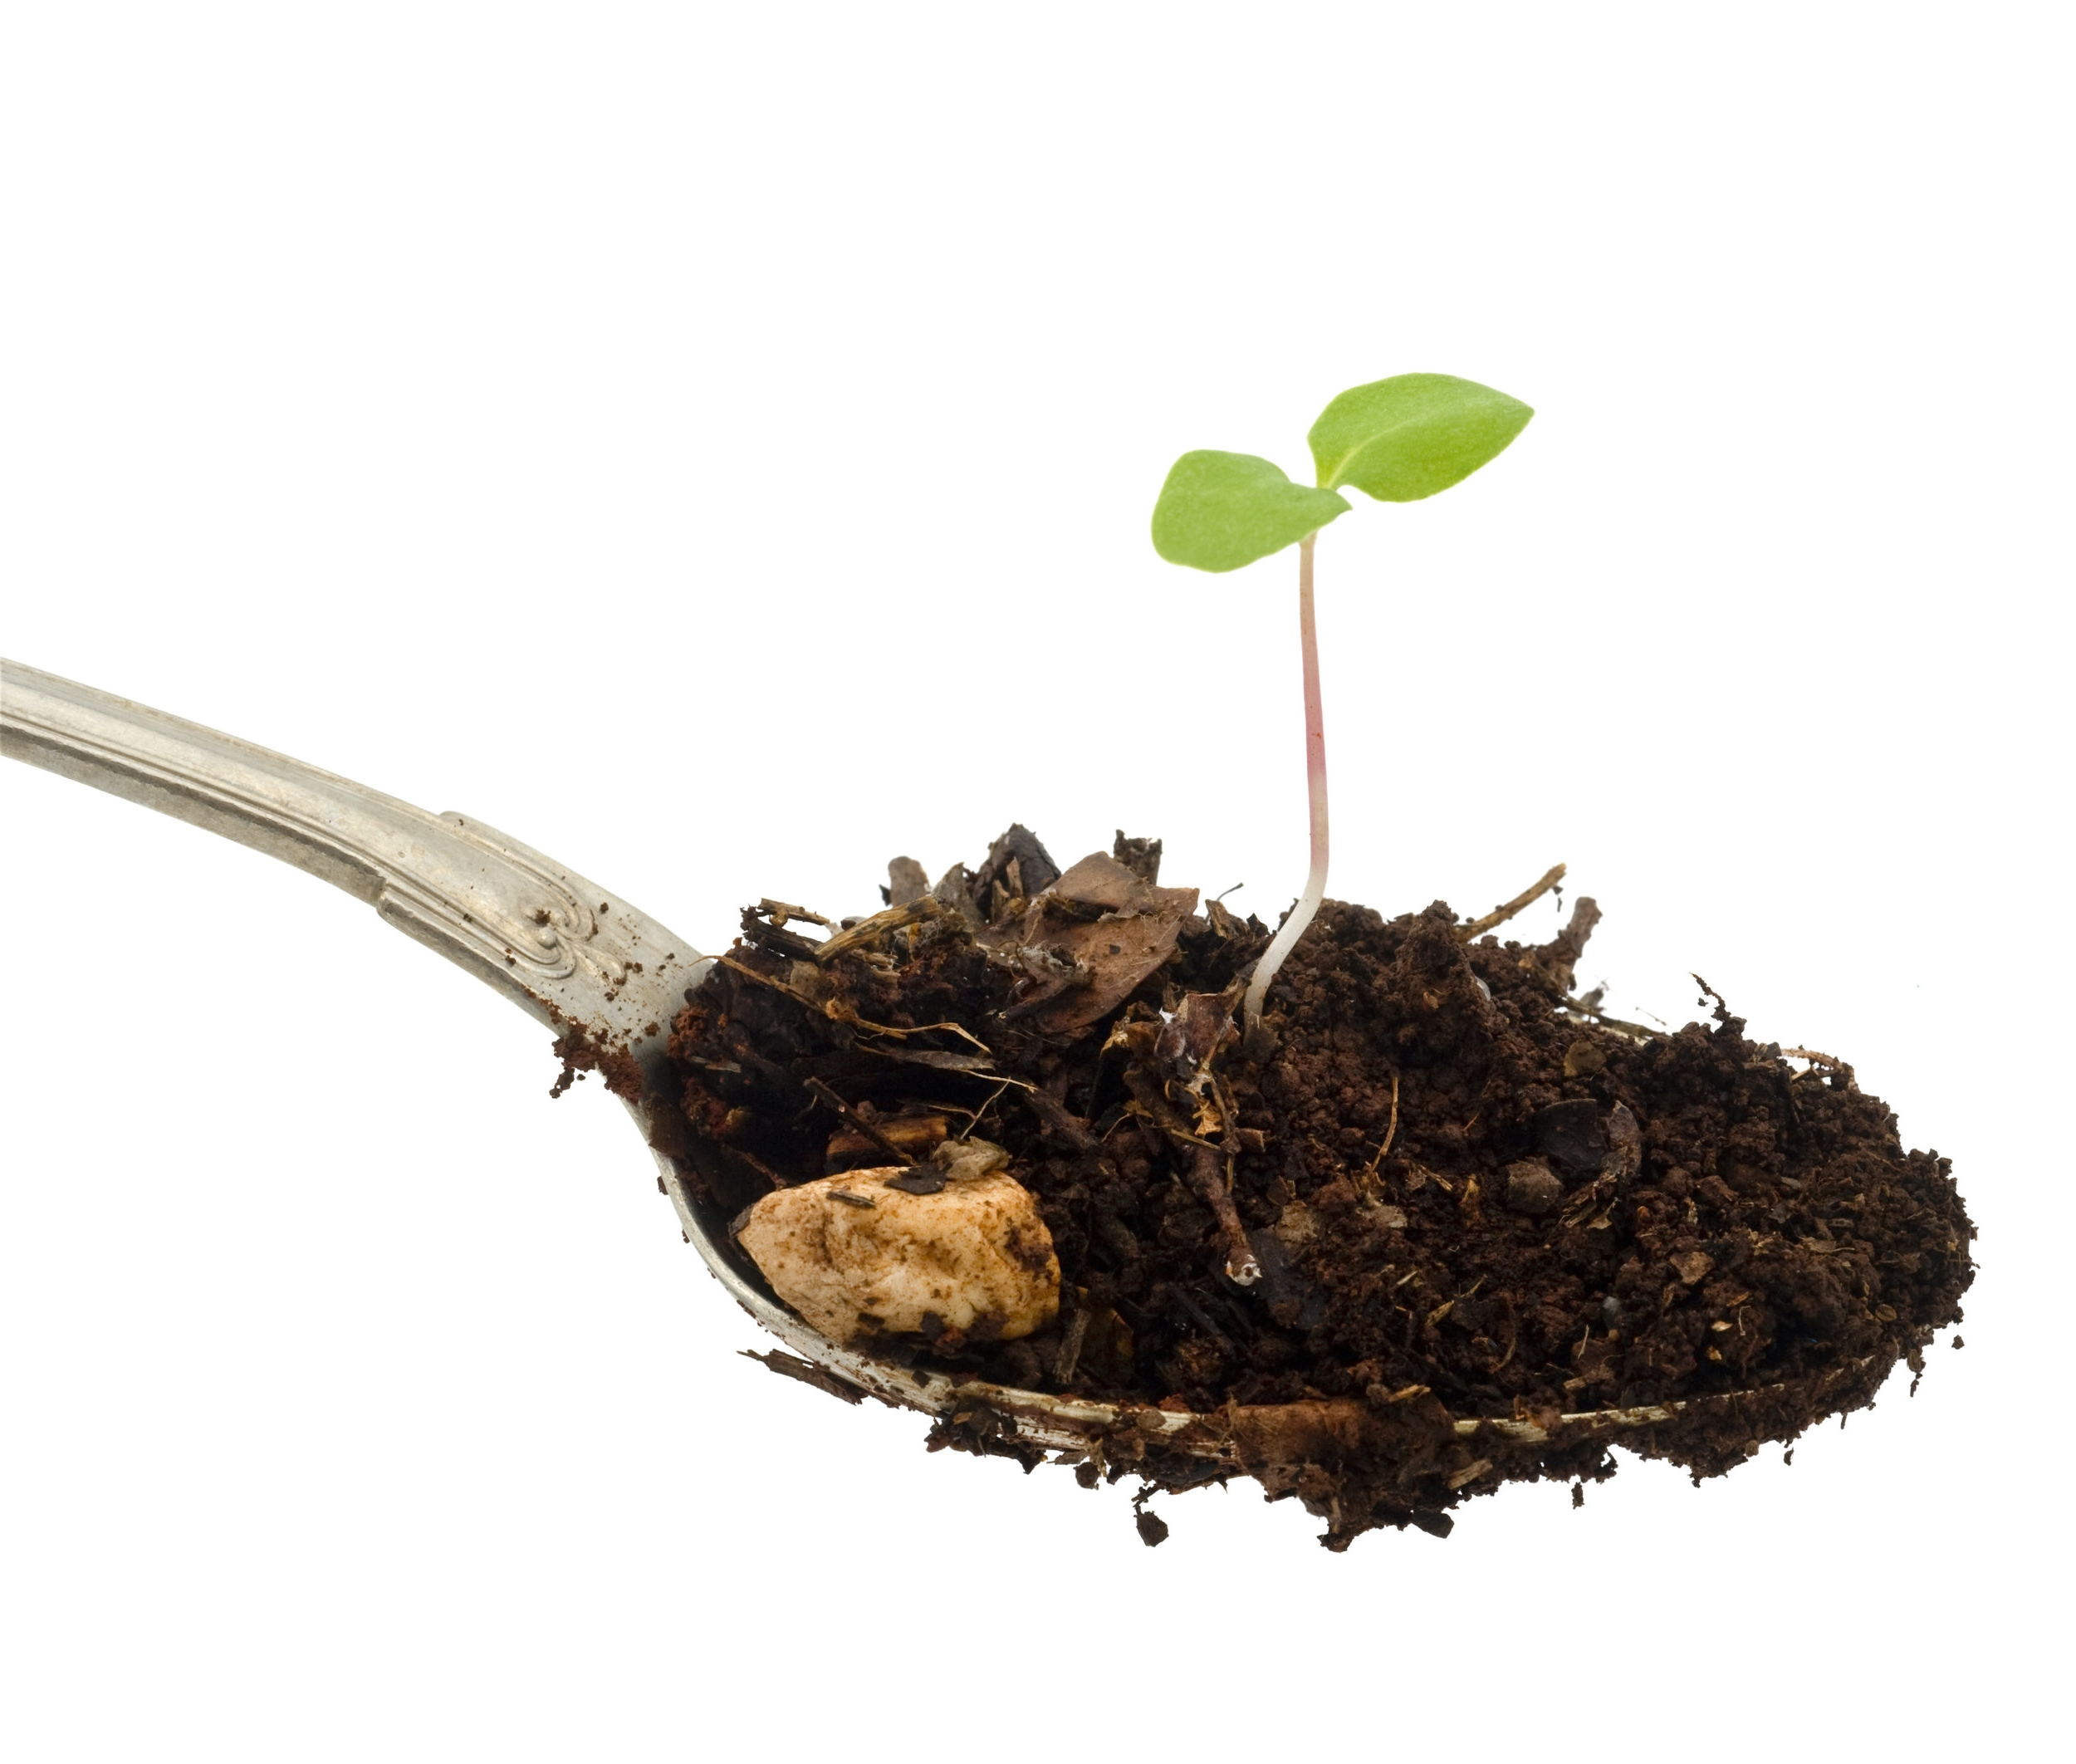 Image:   one teaspoon of soil contains more microbes than there are people on earth.